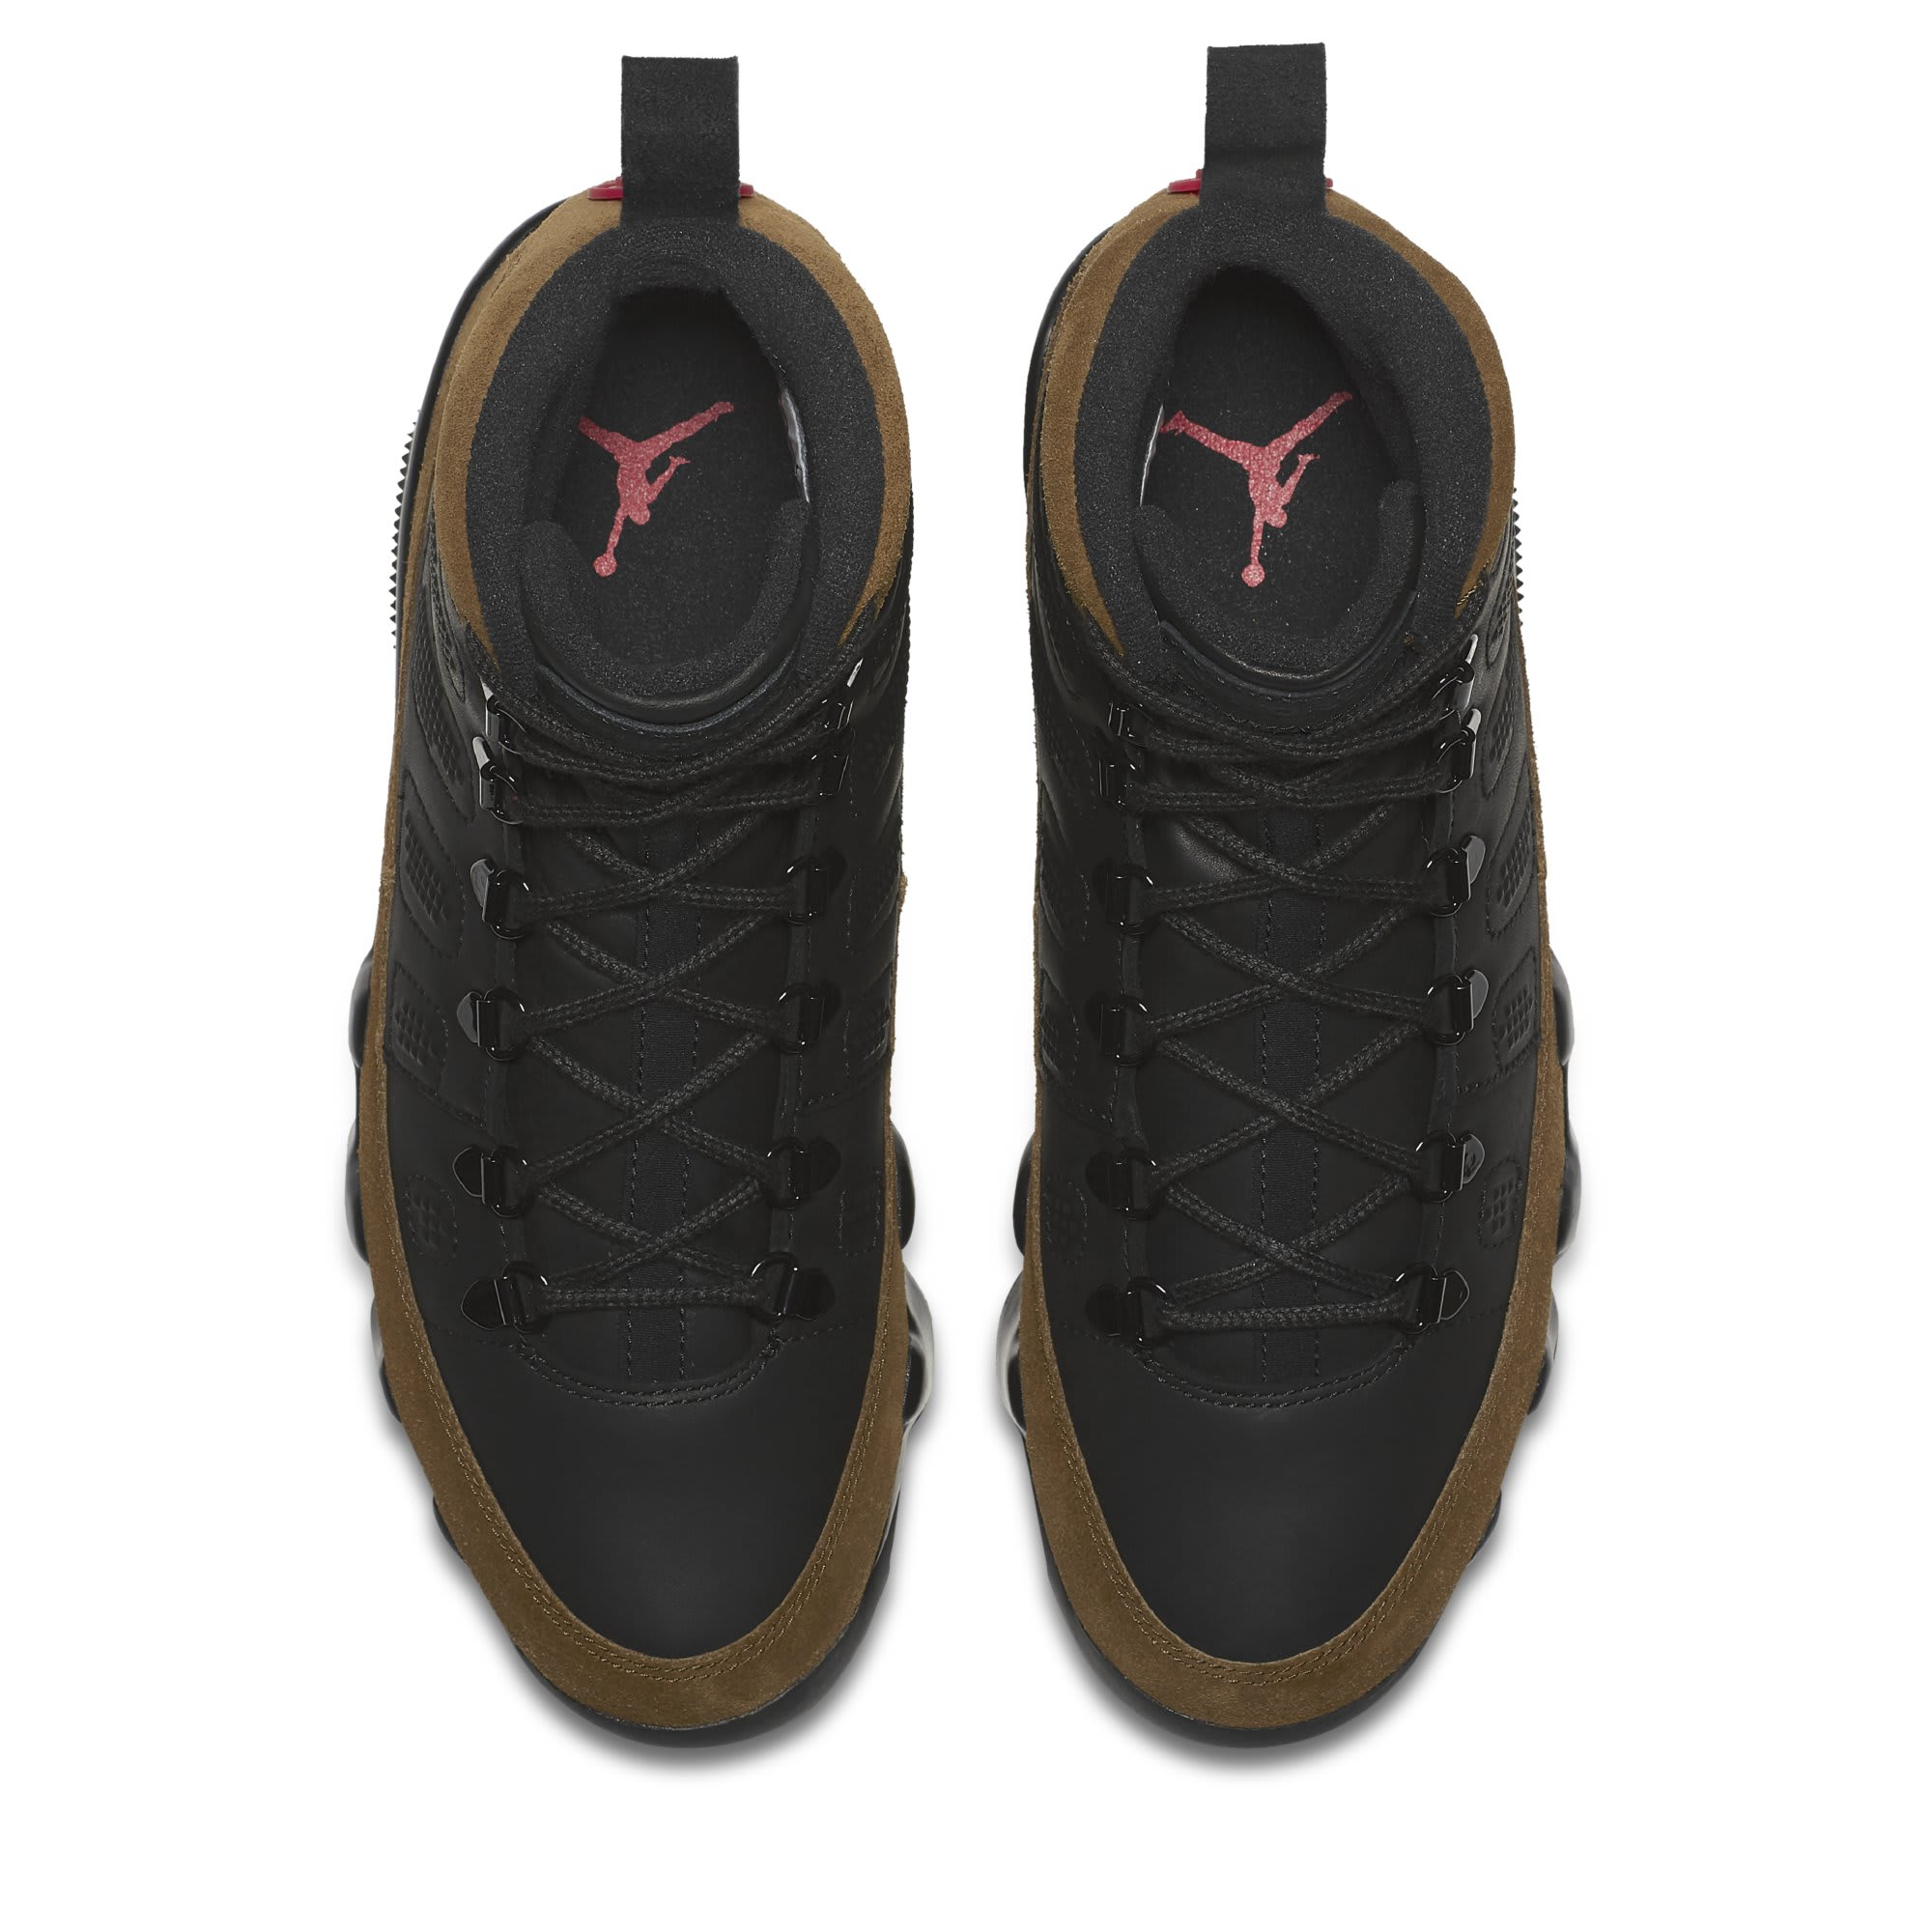 Air Jordan 9 NRG Boot 'Olive' AR4491-012 (Top)